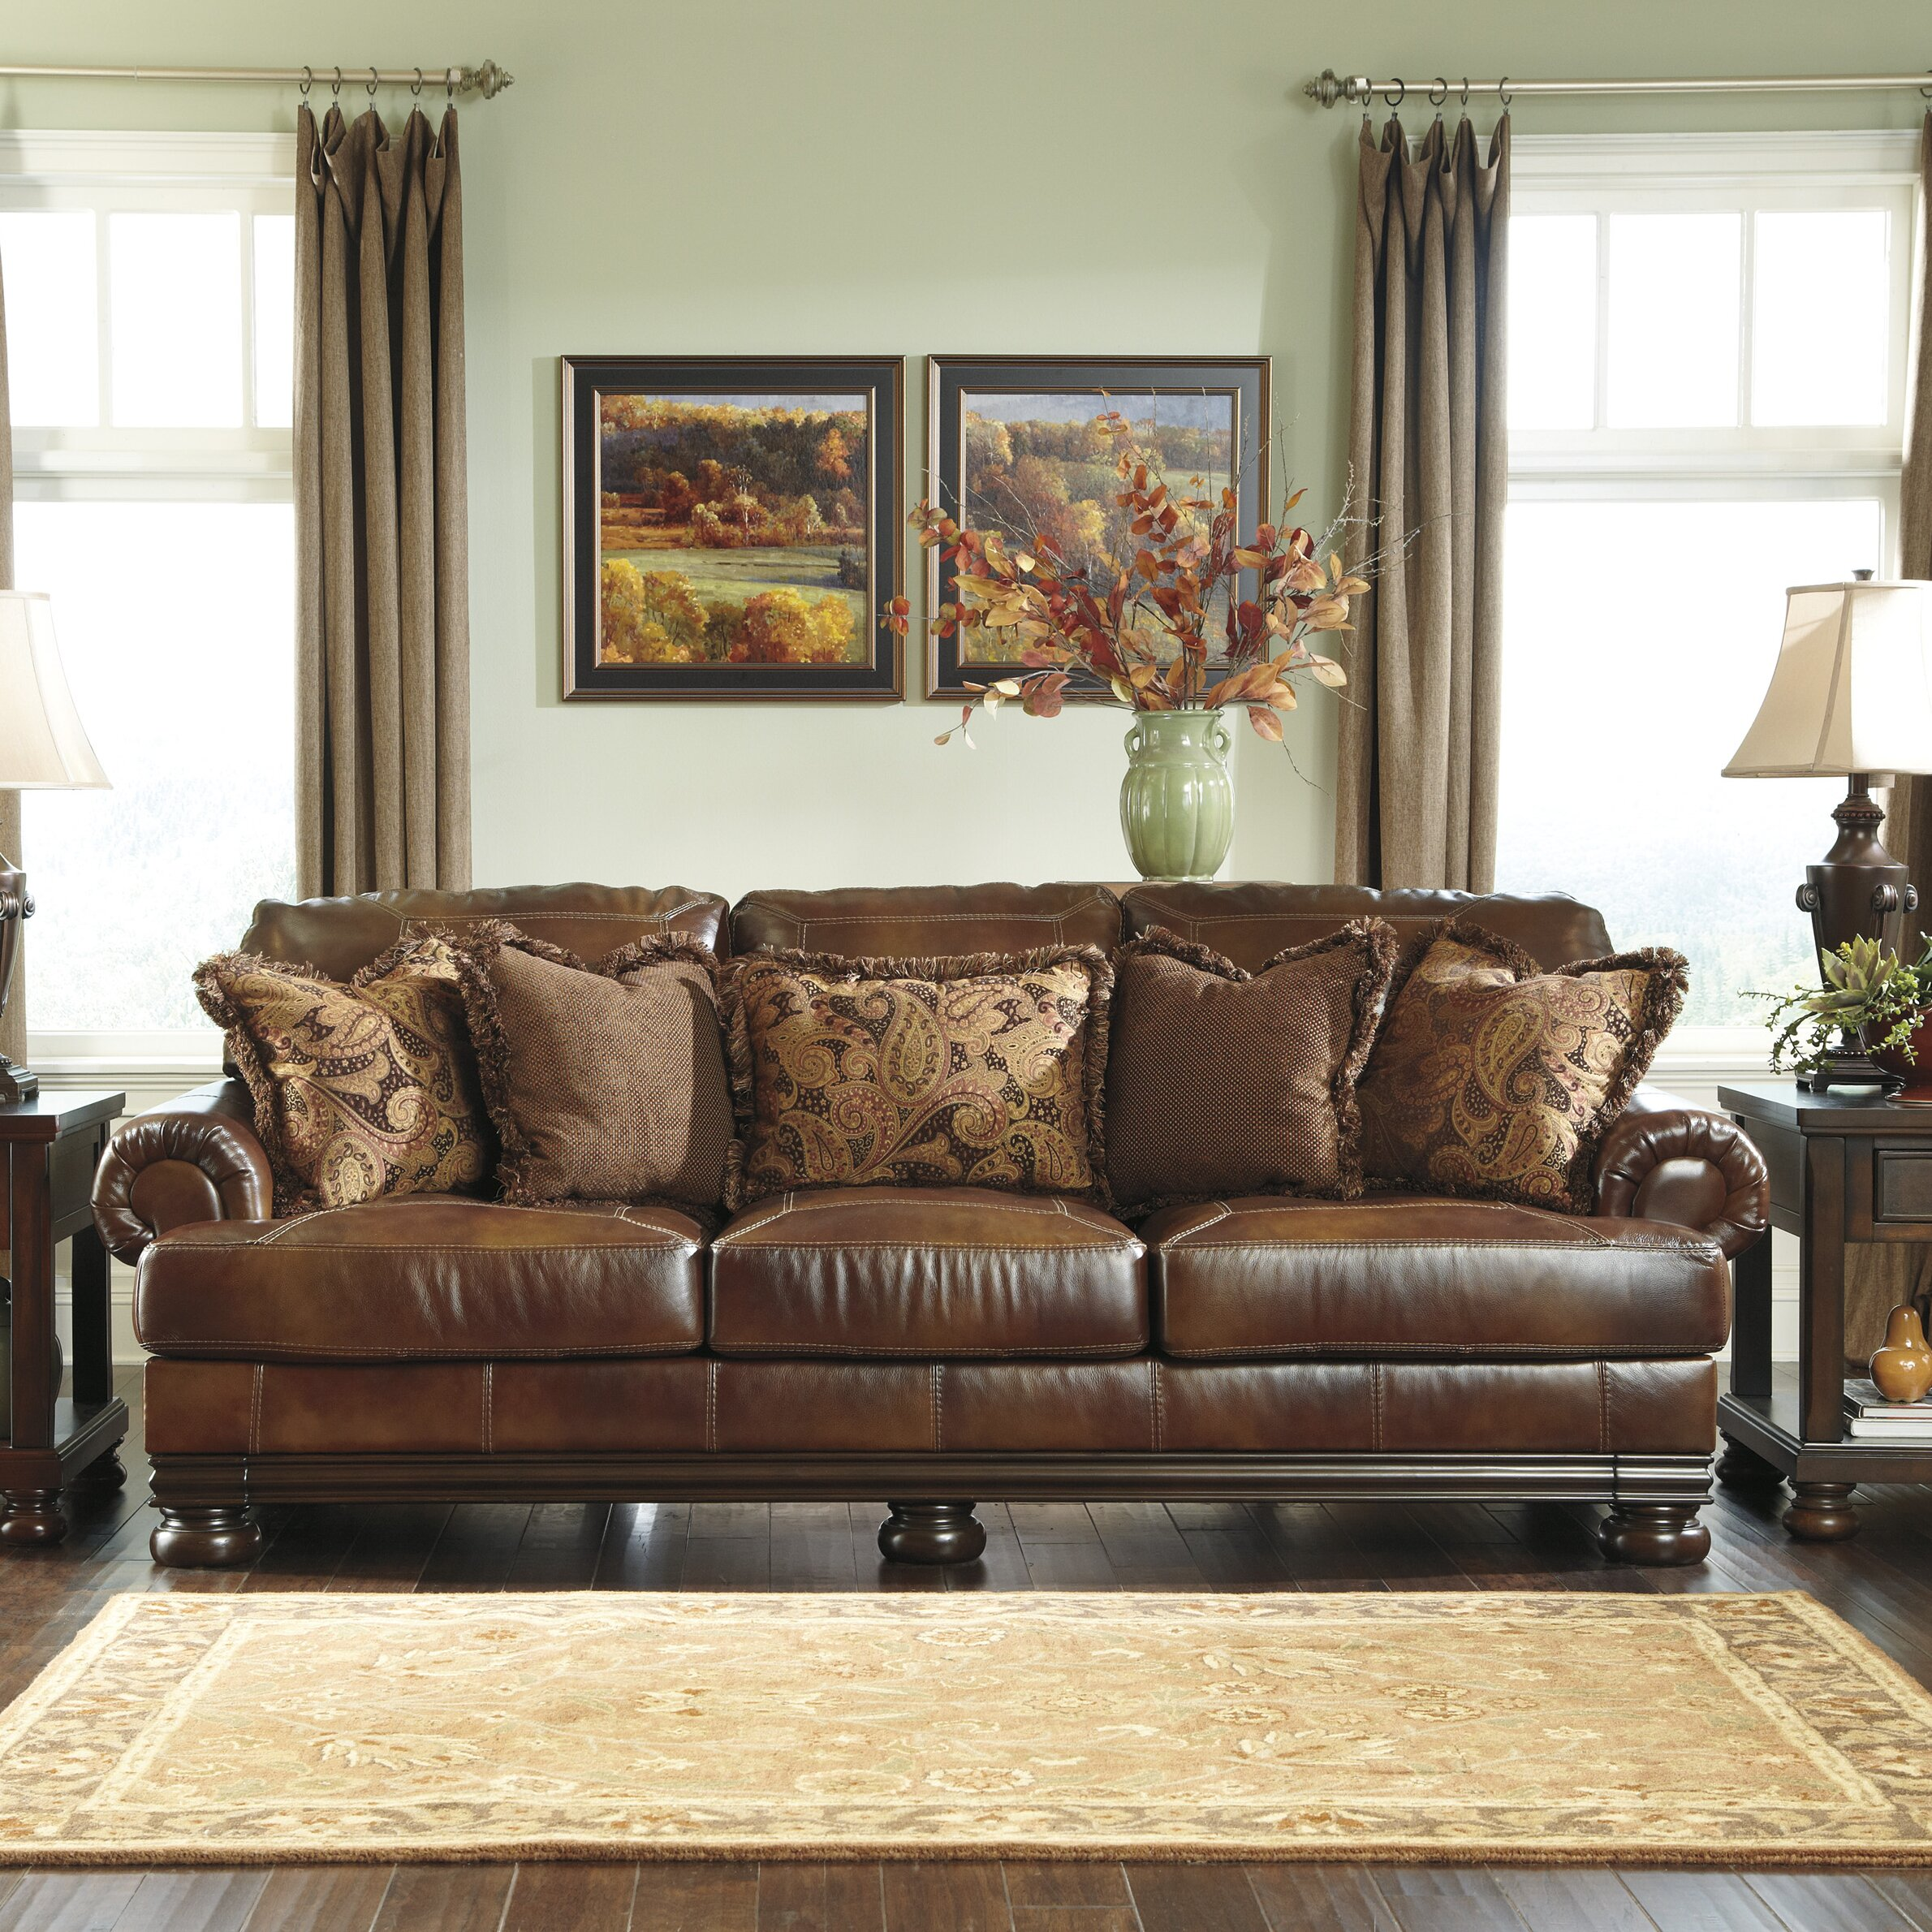 Ashleys Furnitures: Signature Design By Ashley Hutcherson Leather Sofa